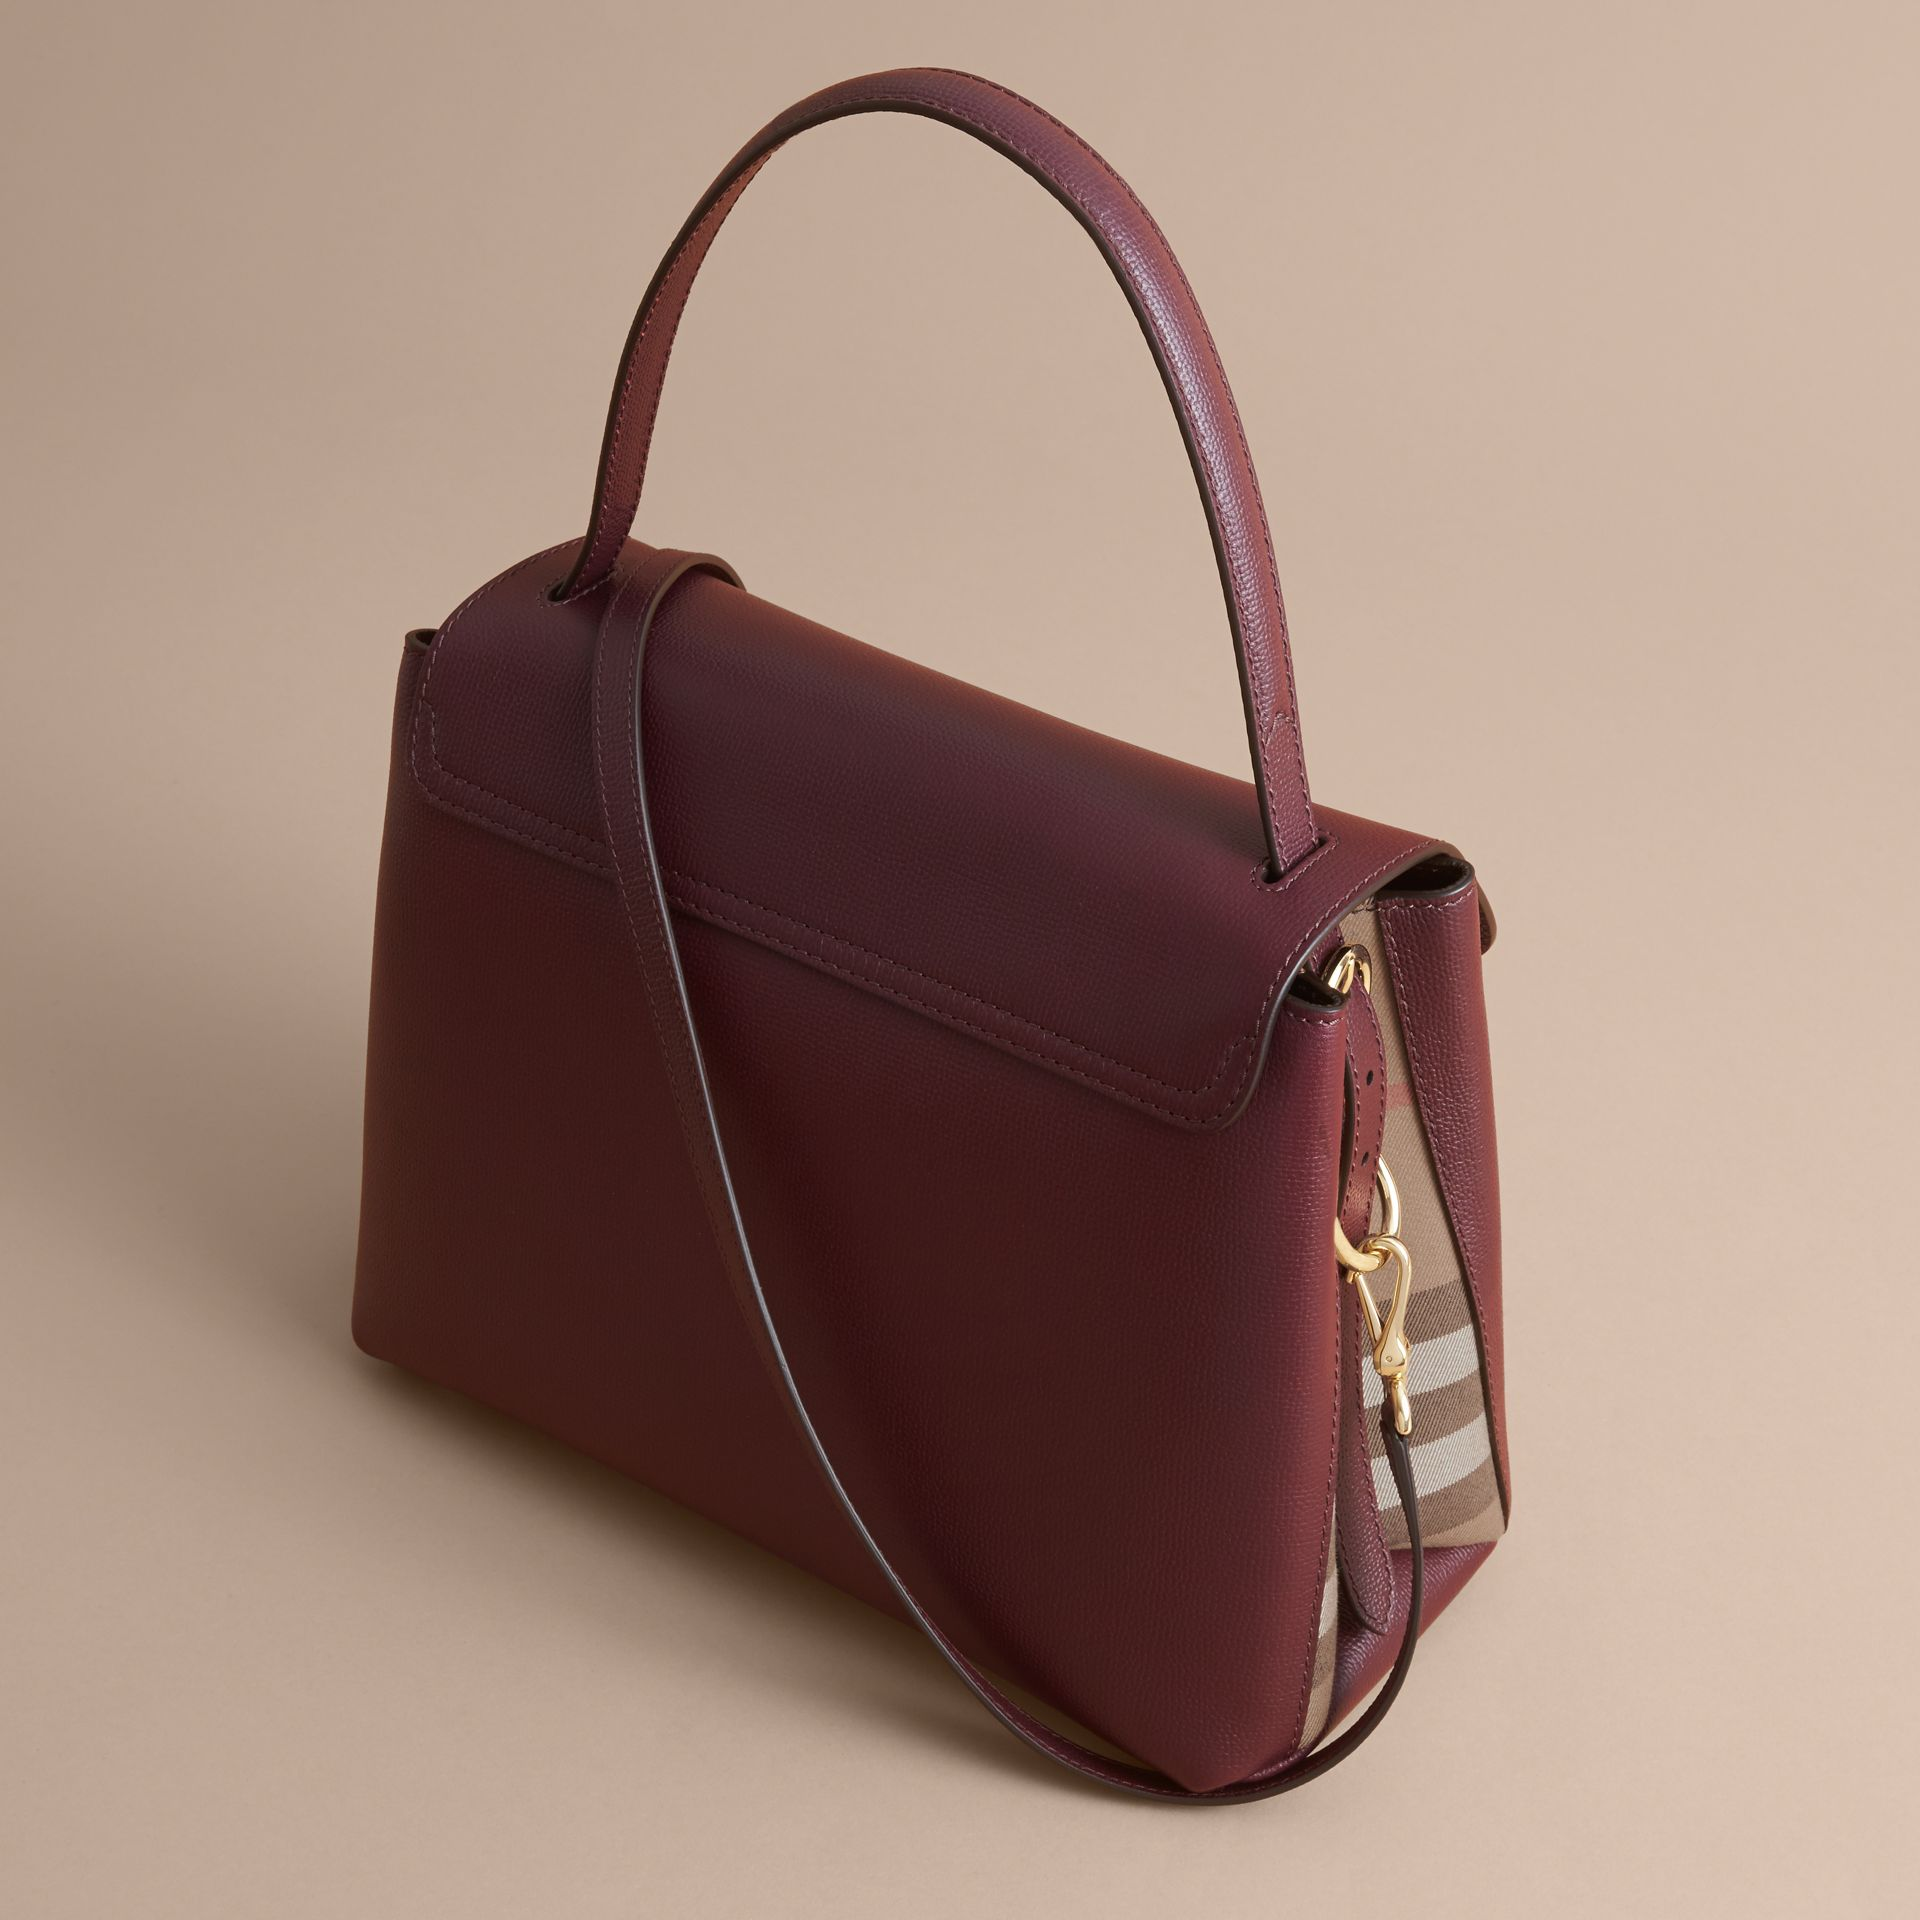 Medium Grainy Leather and House Check Tote Bag in Mahogany Red - Women | Burberry Singapore - gallery image 4